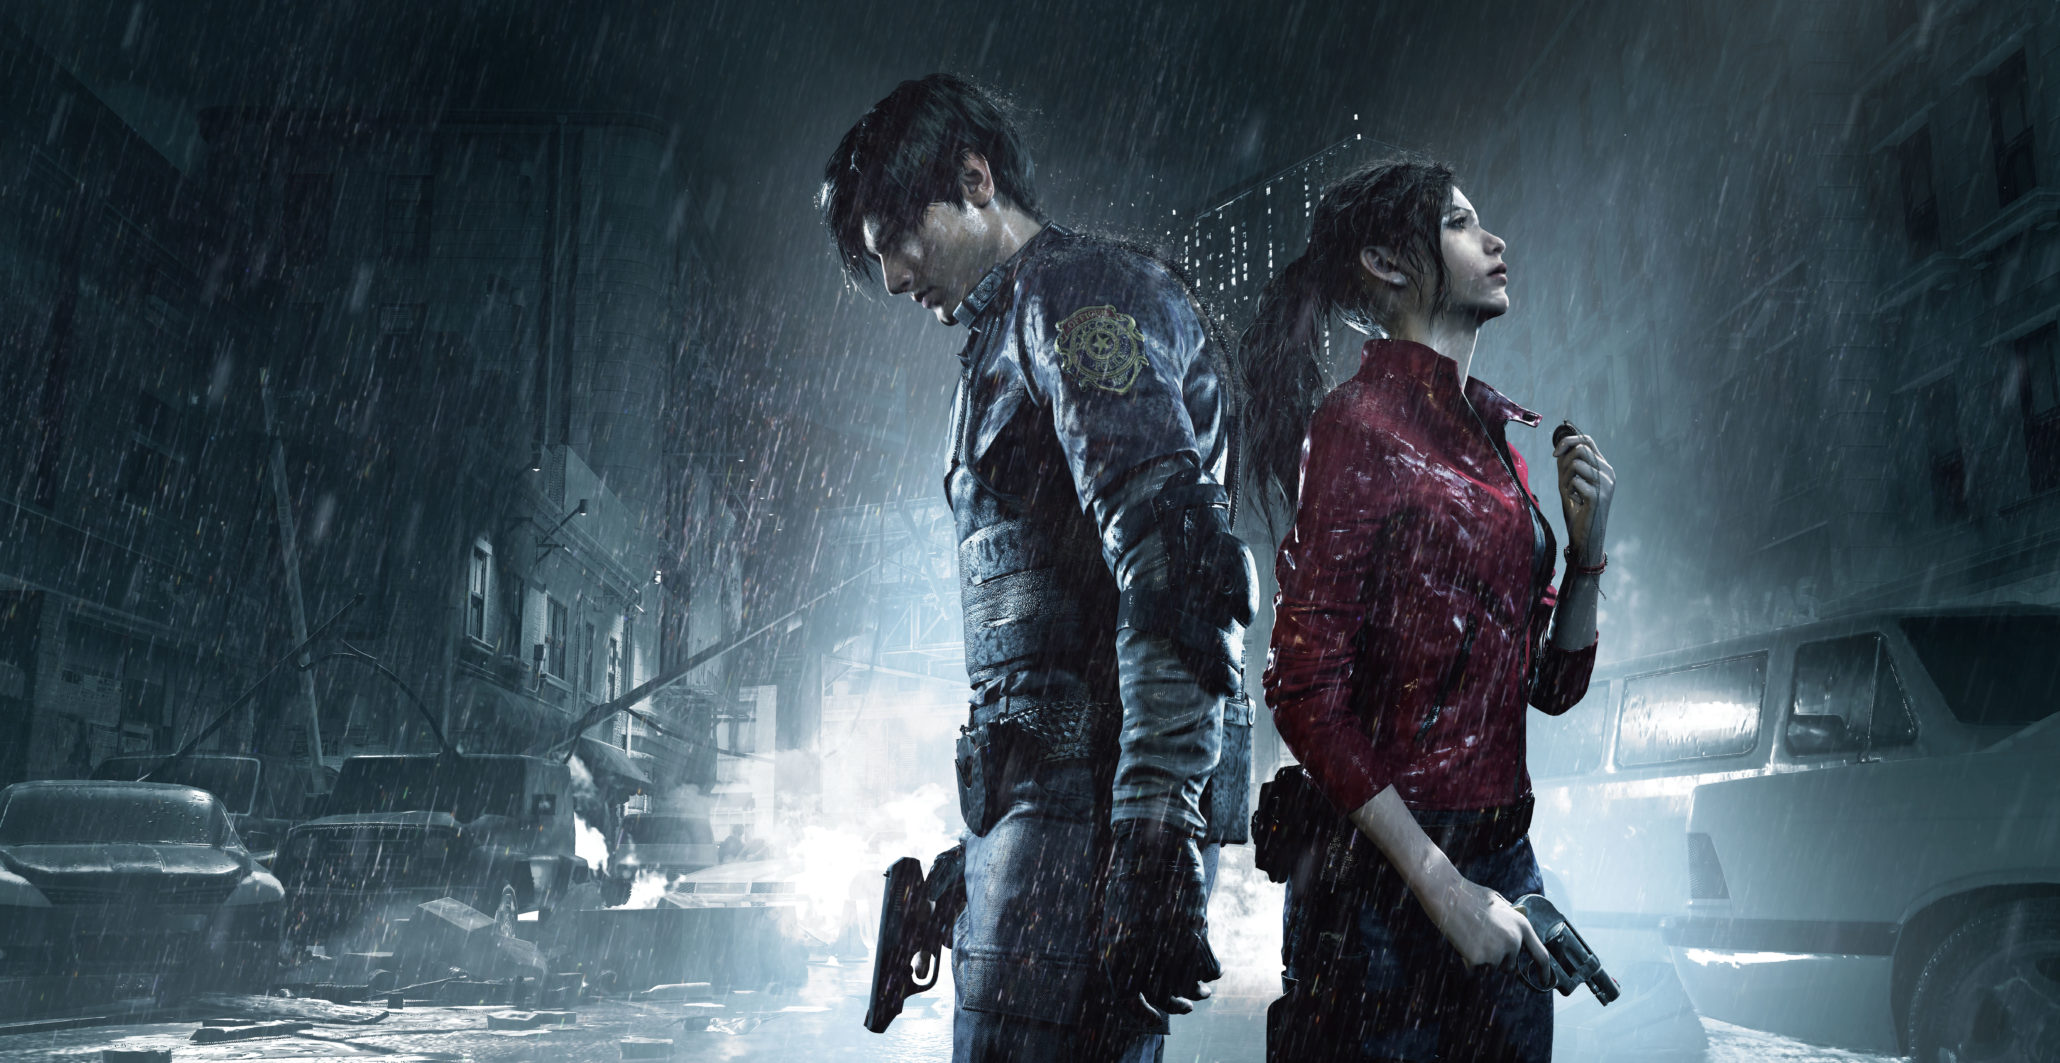 Resident Evil 2 ships 3 million in 4 days | MCV/DEVELOP